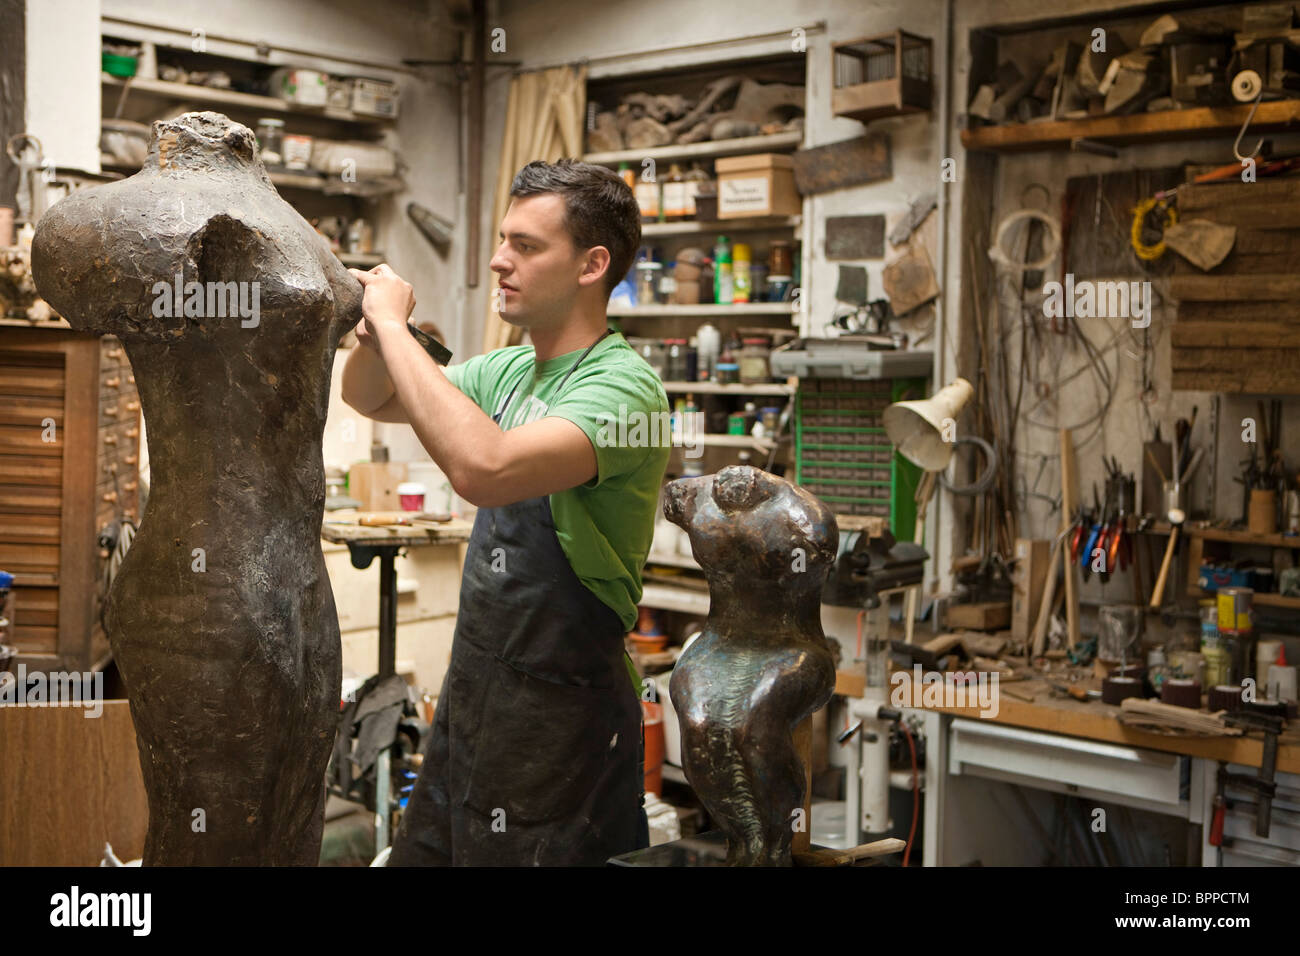 Artist working on sculpture - Stock Image